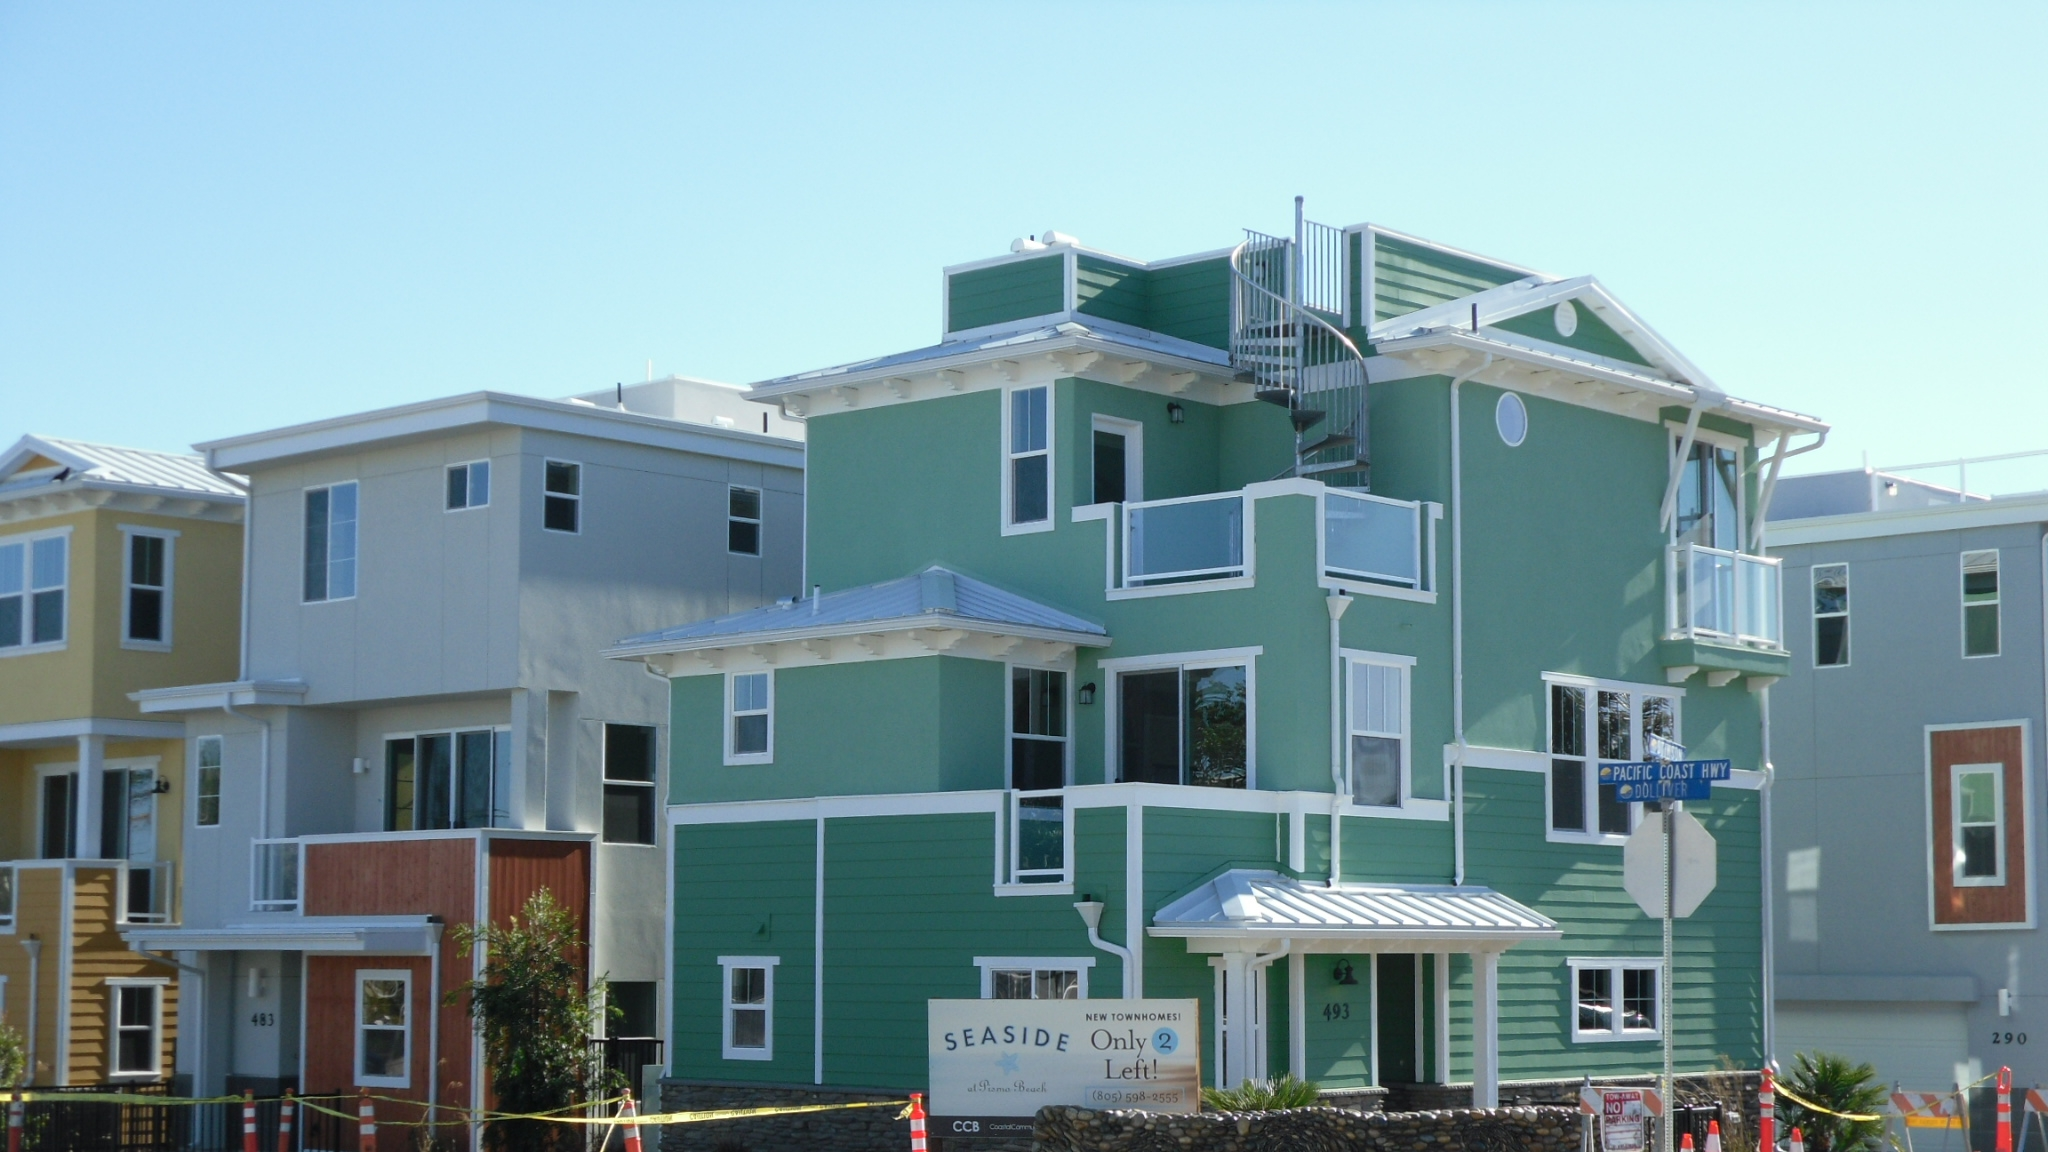 SEASIDE VILLAS  - PISMO BEACH, CA  The neighborhood of Seaside Villas consists of eight, three-story single family residences in the heart of downtown Pismo Beach. Each of the residences also has a roof deck to maximize functional building area while minimizing the overall footprint. Praxis teamed with RRM Design Group and Coastal Community Builders to provide structural engineering design and construction phase services.  Structural Engineering Design | Construction Phase